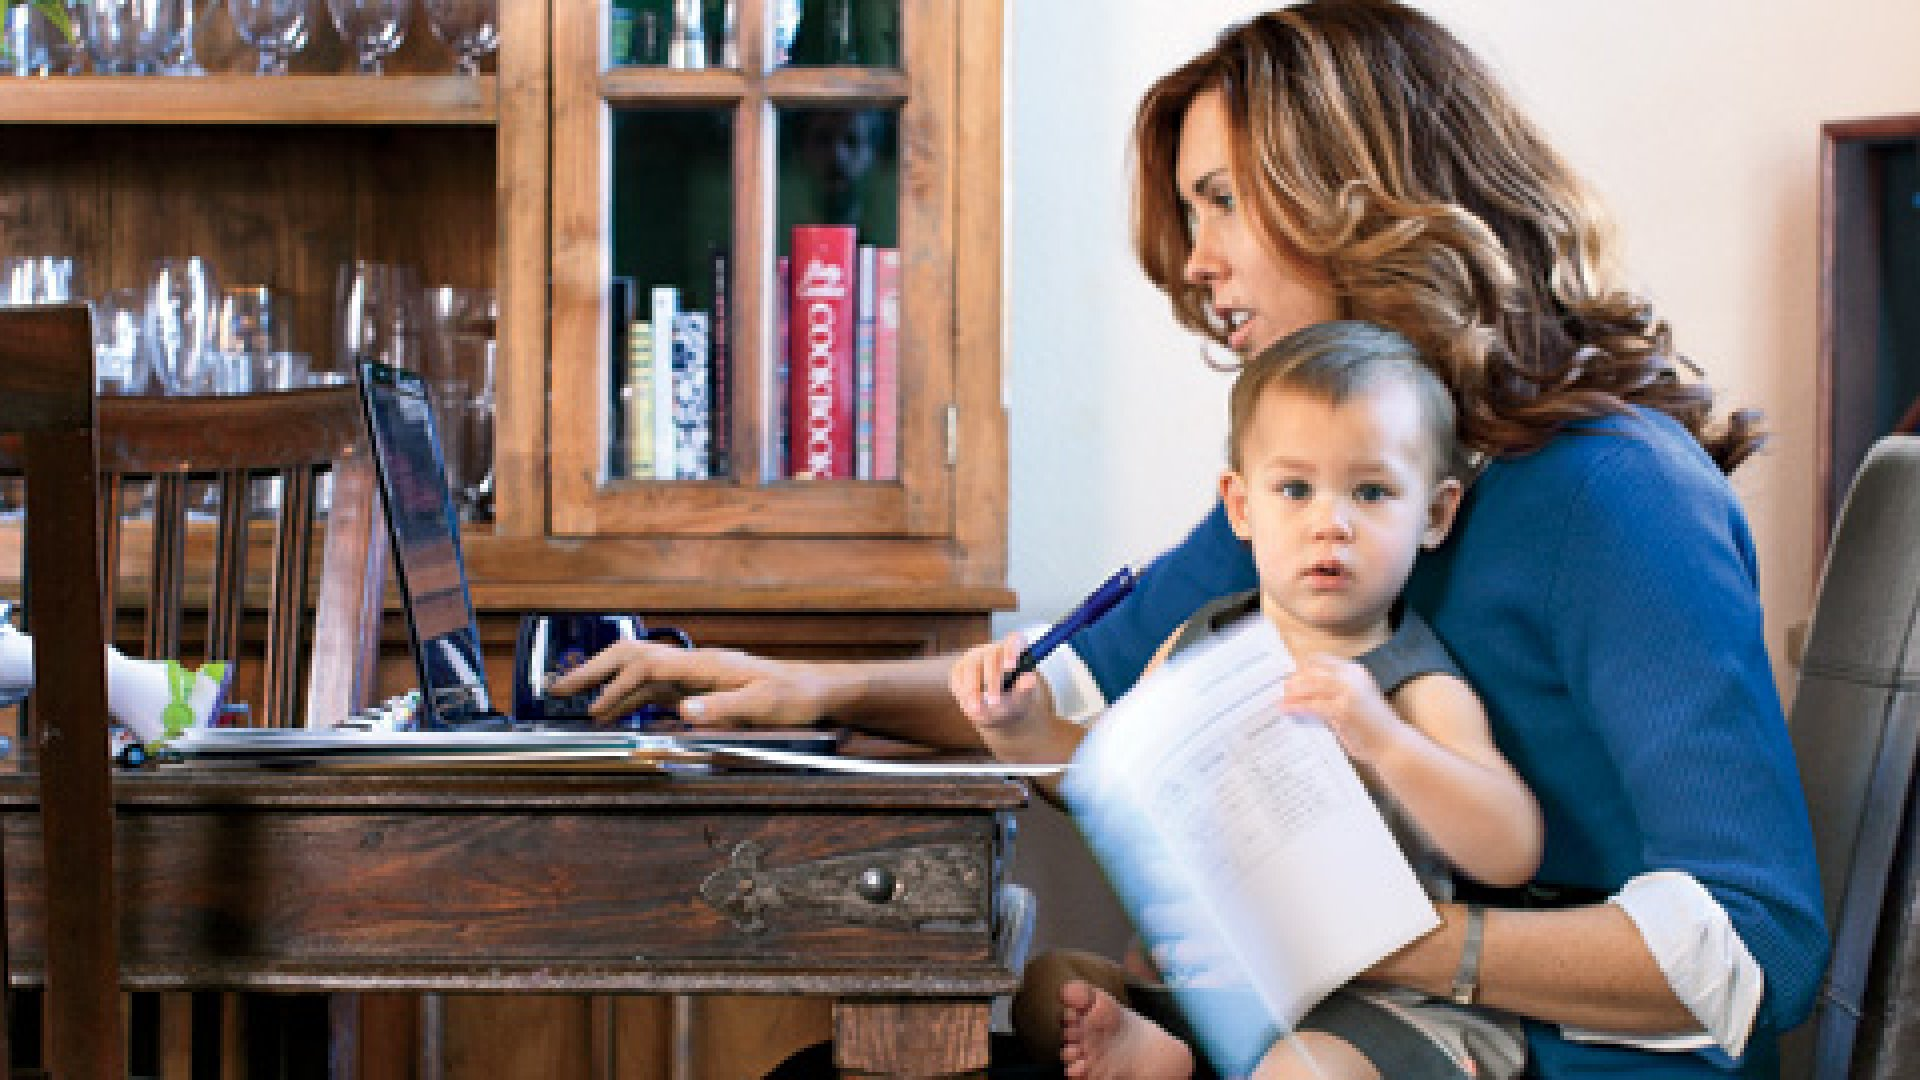 <strong>Mom on a Mission</strong> Jamie Latshaw needs quiet time to work on military contracts. That doesn't mean she gets it.